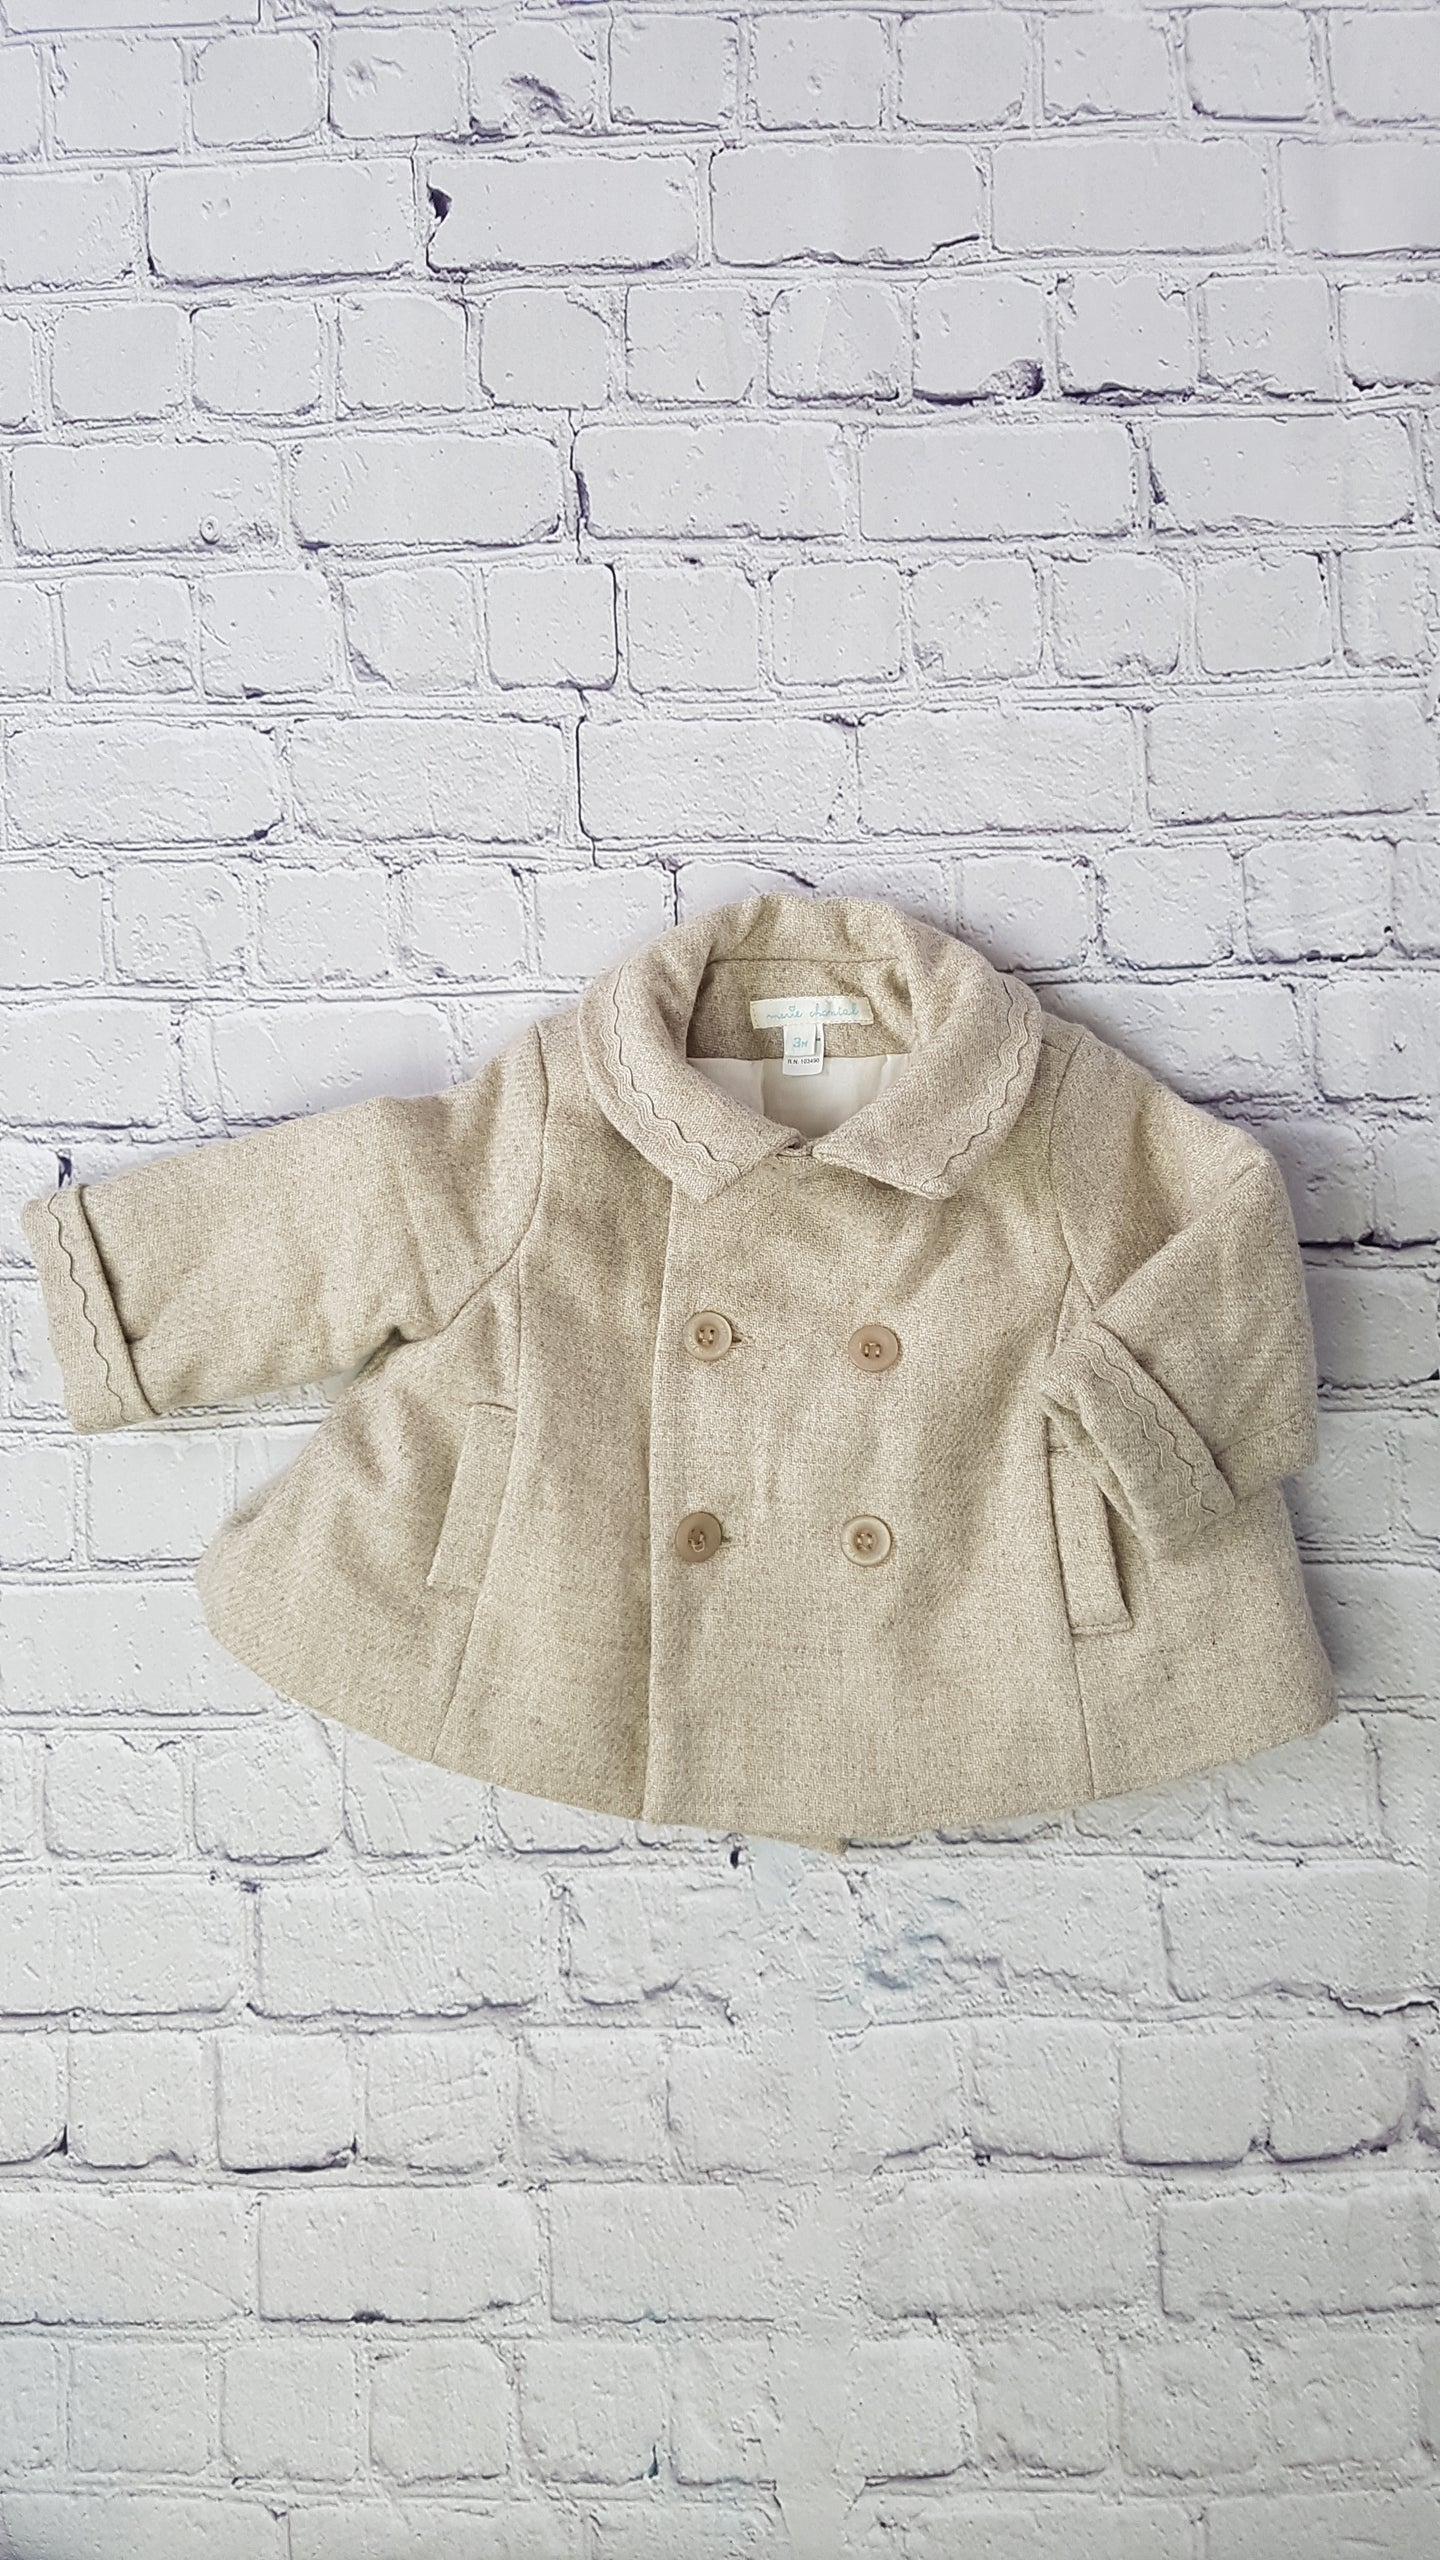 manteau beige en laine marie chantal bebe baby coat 3 months preloved